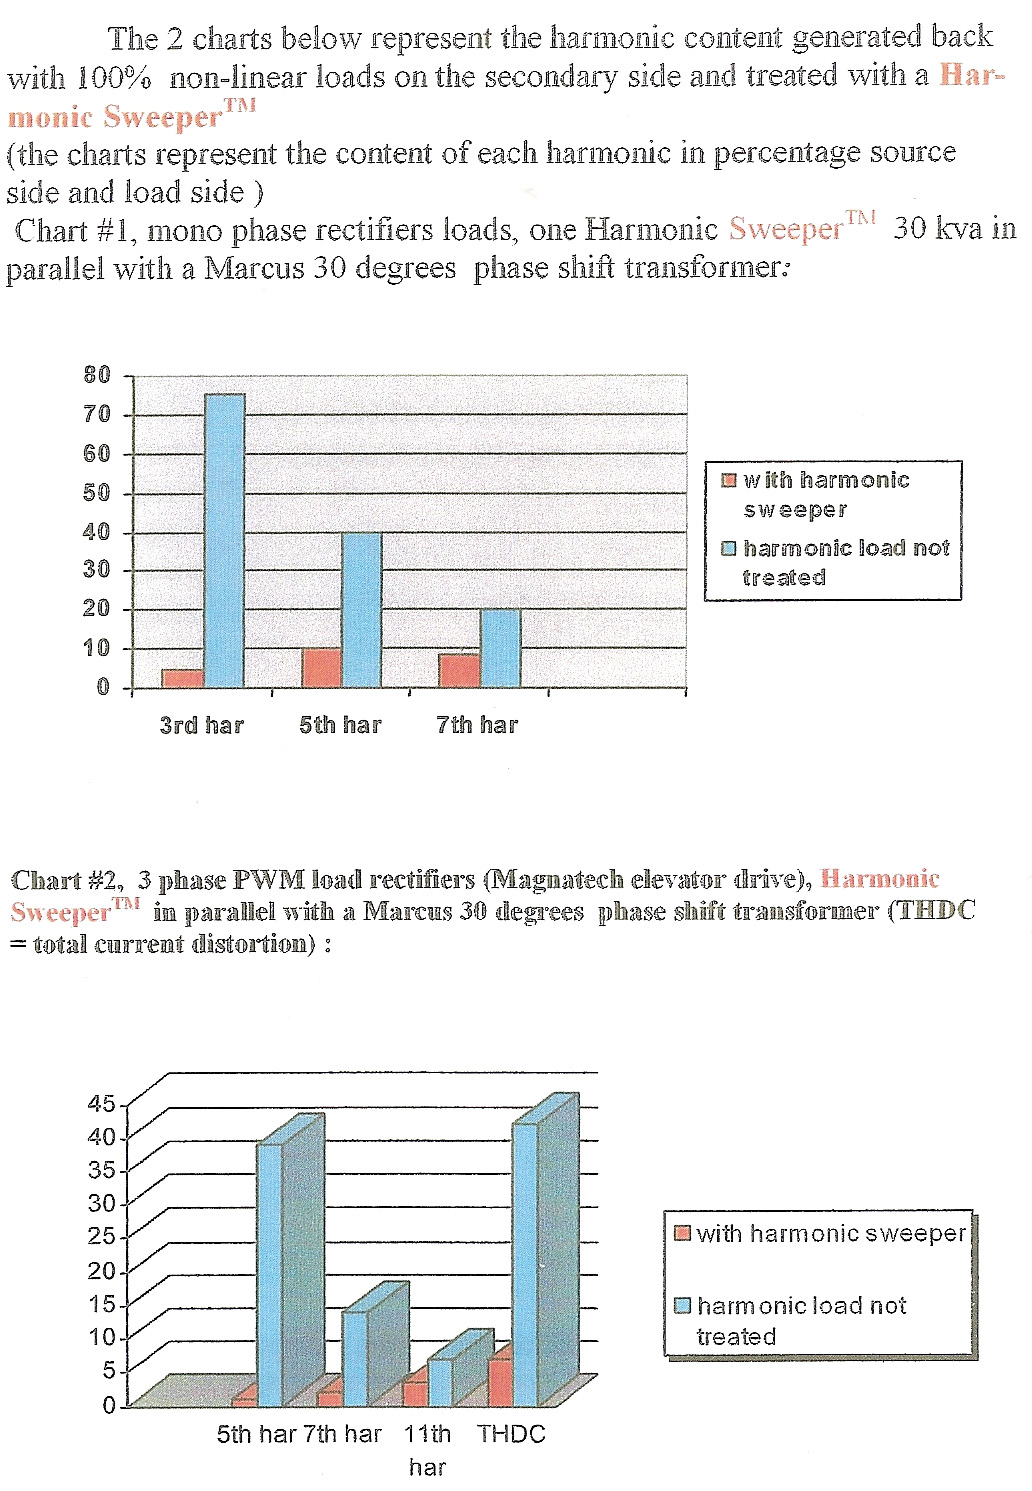 27_4_MTZ Performance and Field Result Charts mtz marcus harmonic mitigating (harmonic sweeper) distribution marcus transformer wiring diagram at bakdesigns.co